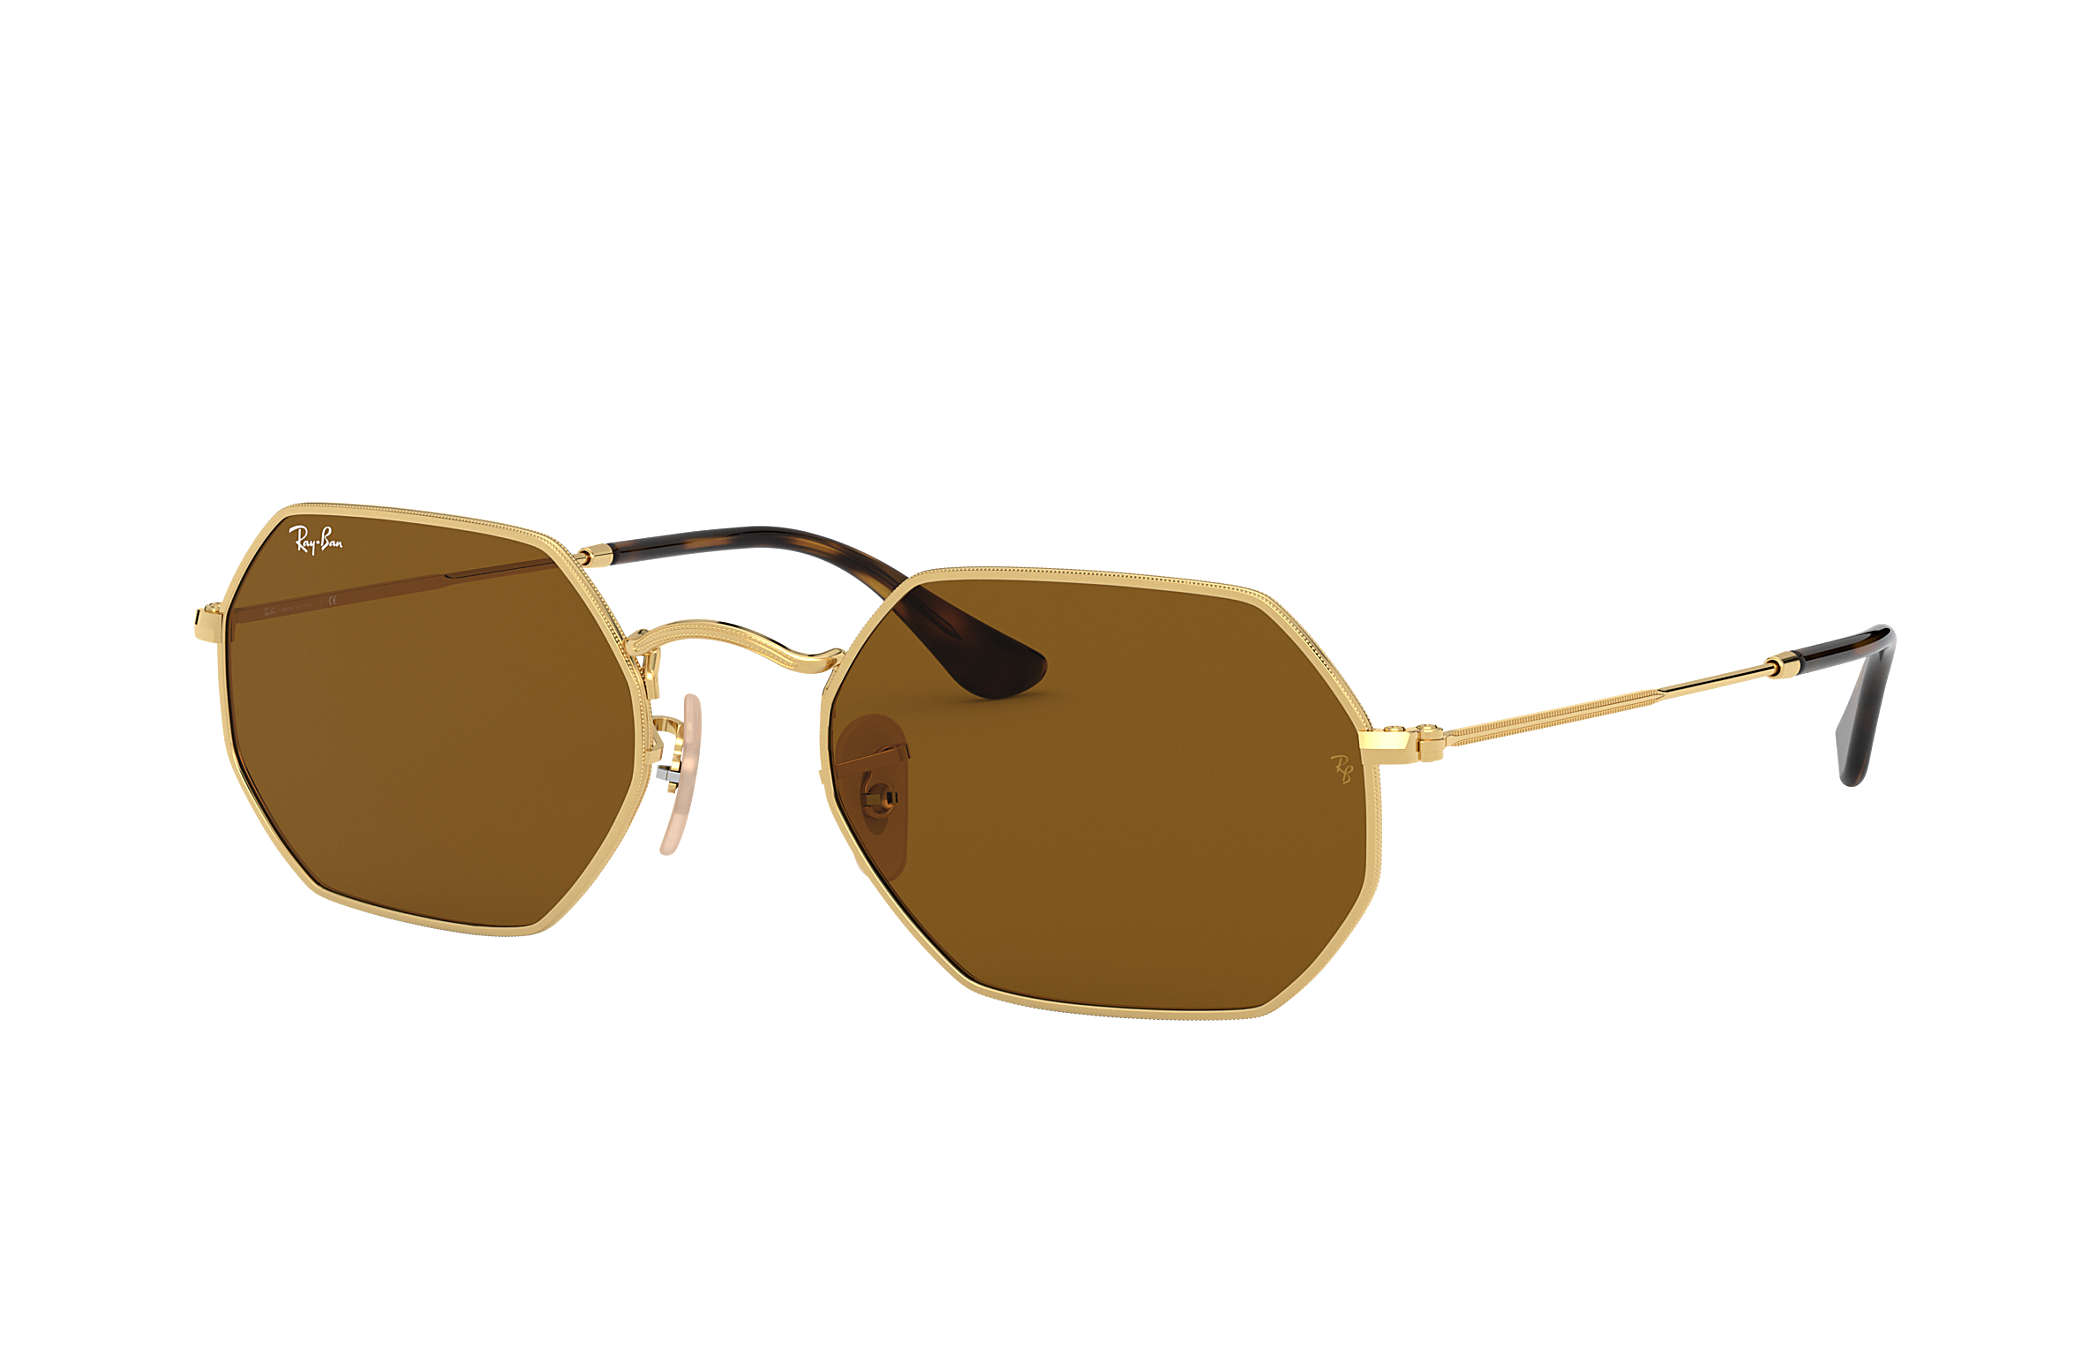 57575463a9abe Ray-Ban Octagonal Classic RB3556N Gold - Metal - Brown Lenses ...